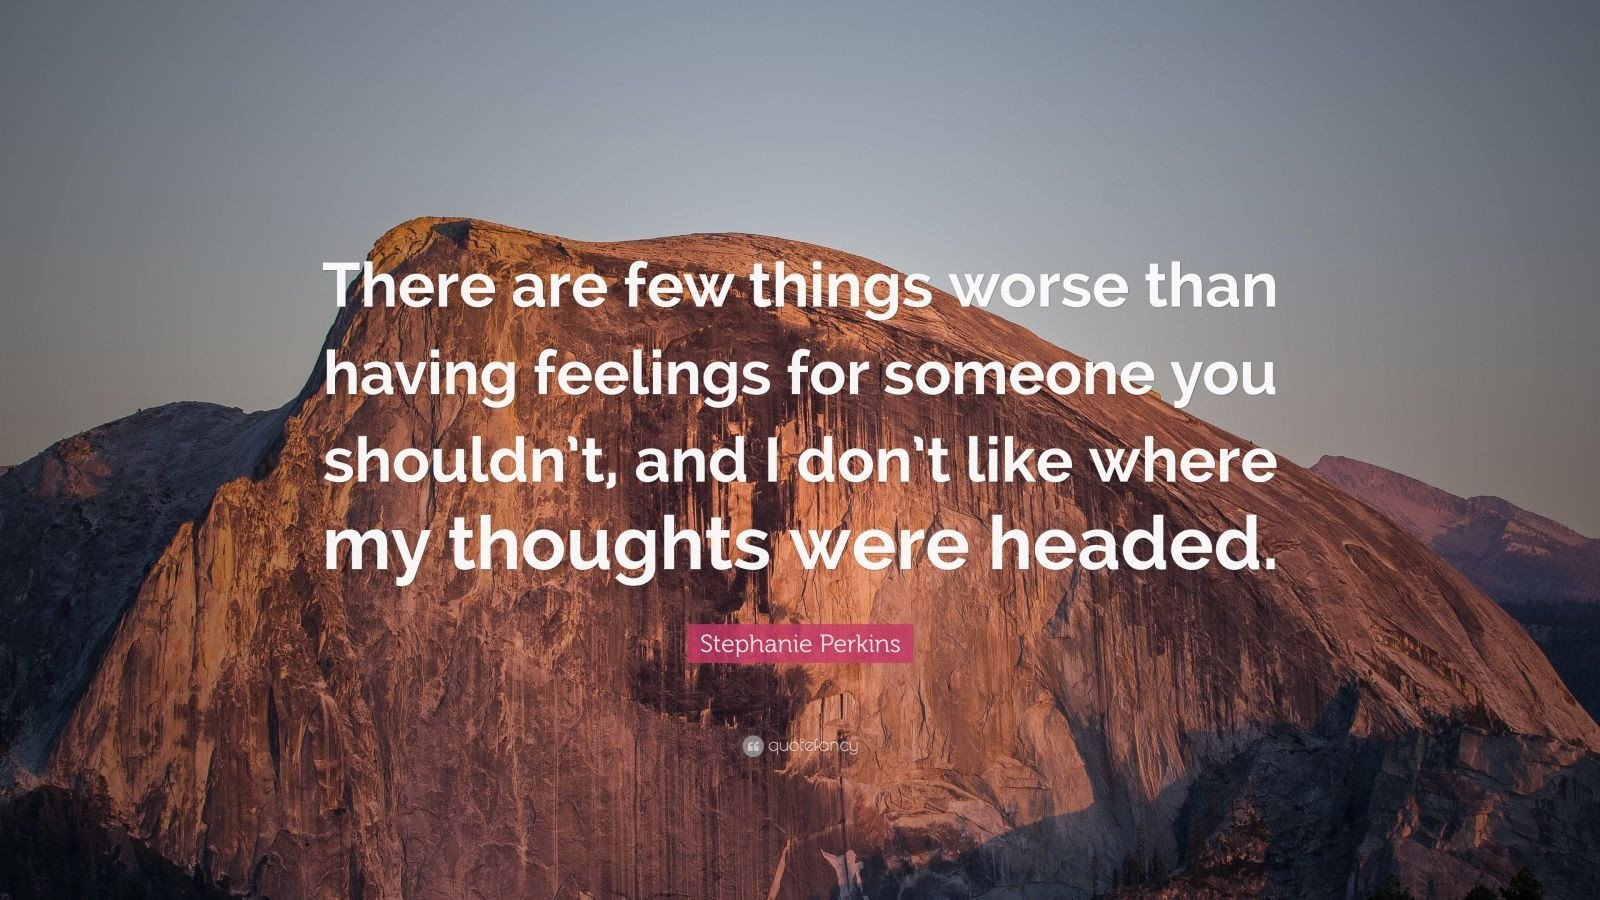 Stephanie Perkins Quote: There are few things worse than